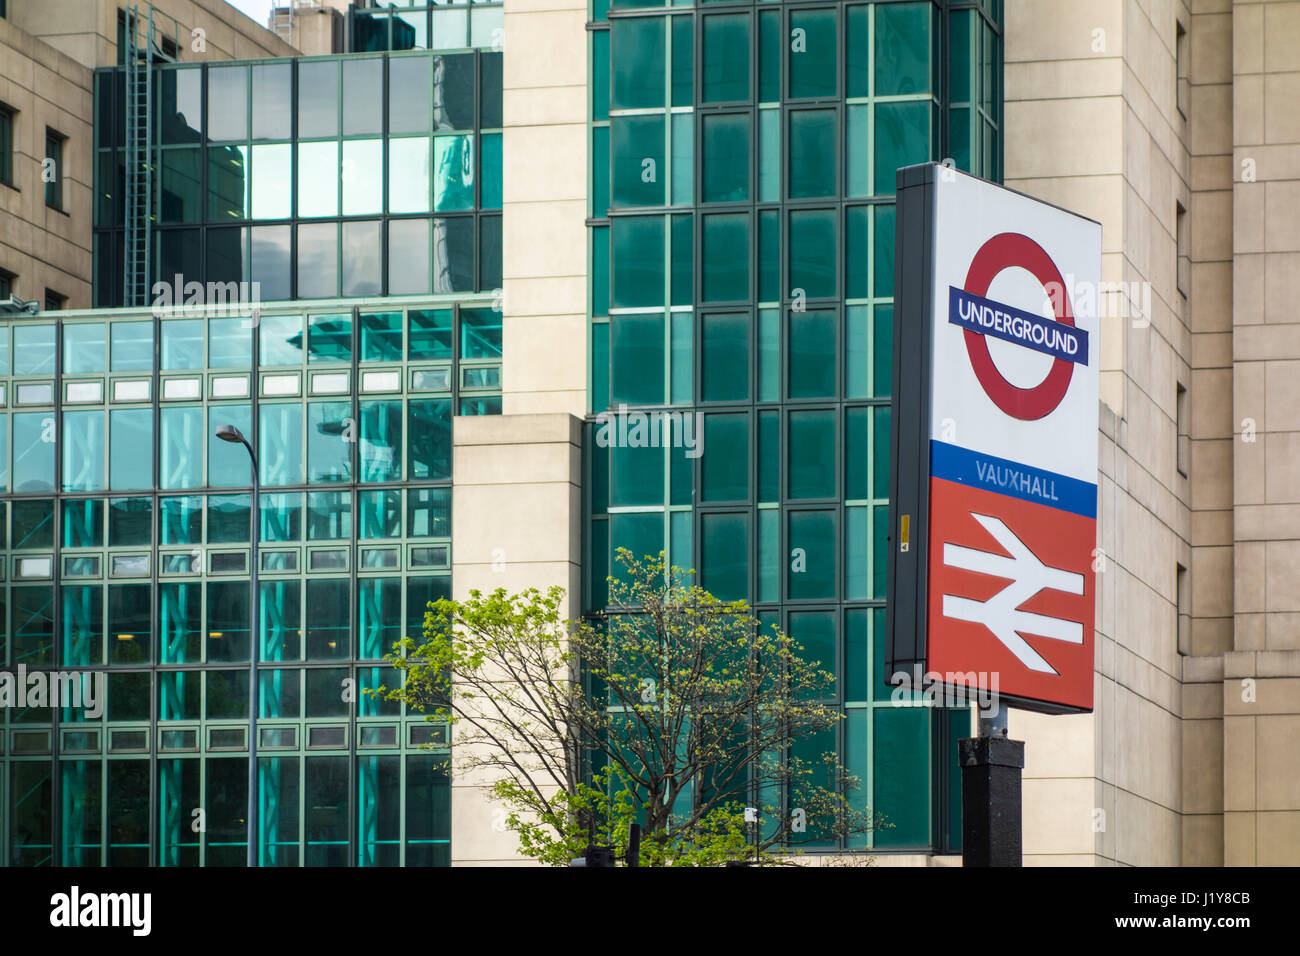 Vauxhall underground station sign in front of MI6 building, London, UK - Stock Image